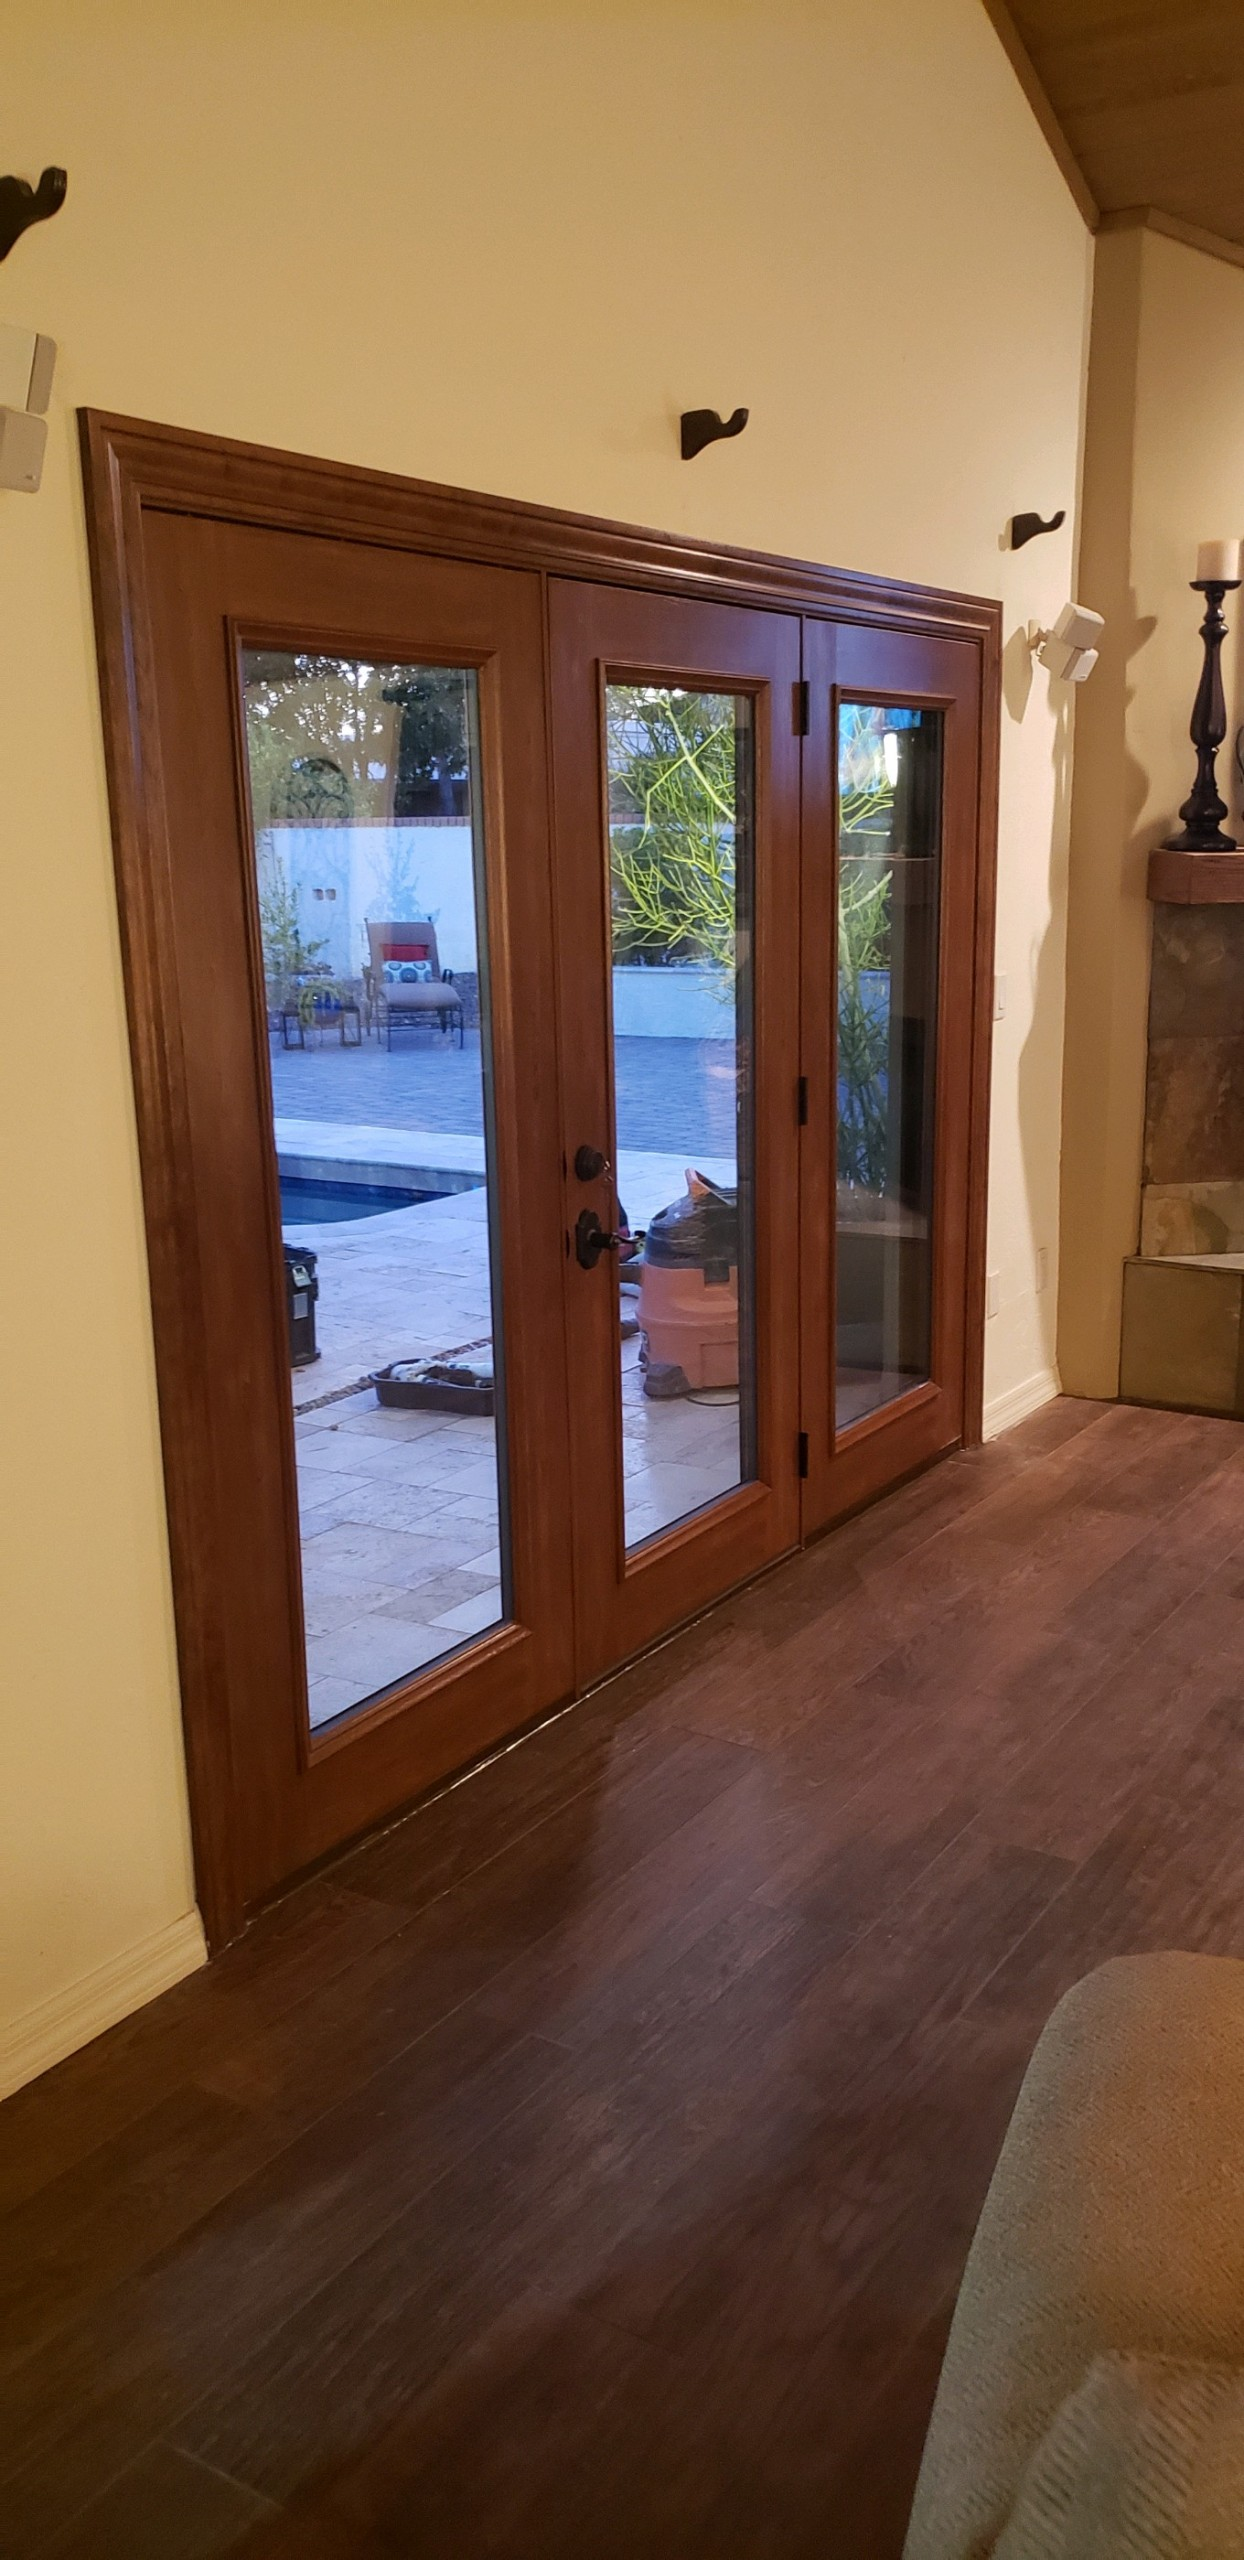 Arizona Window and Door in Scottsdale and Tucson showing wood french doors